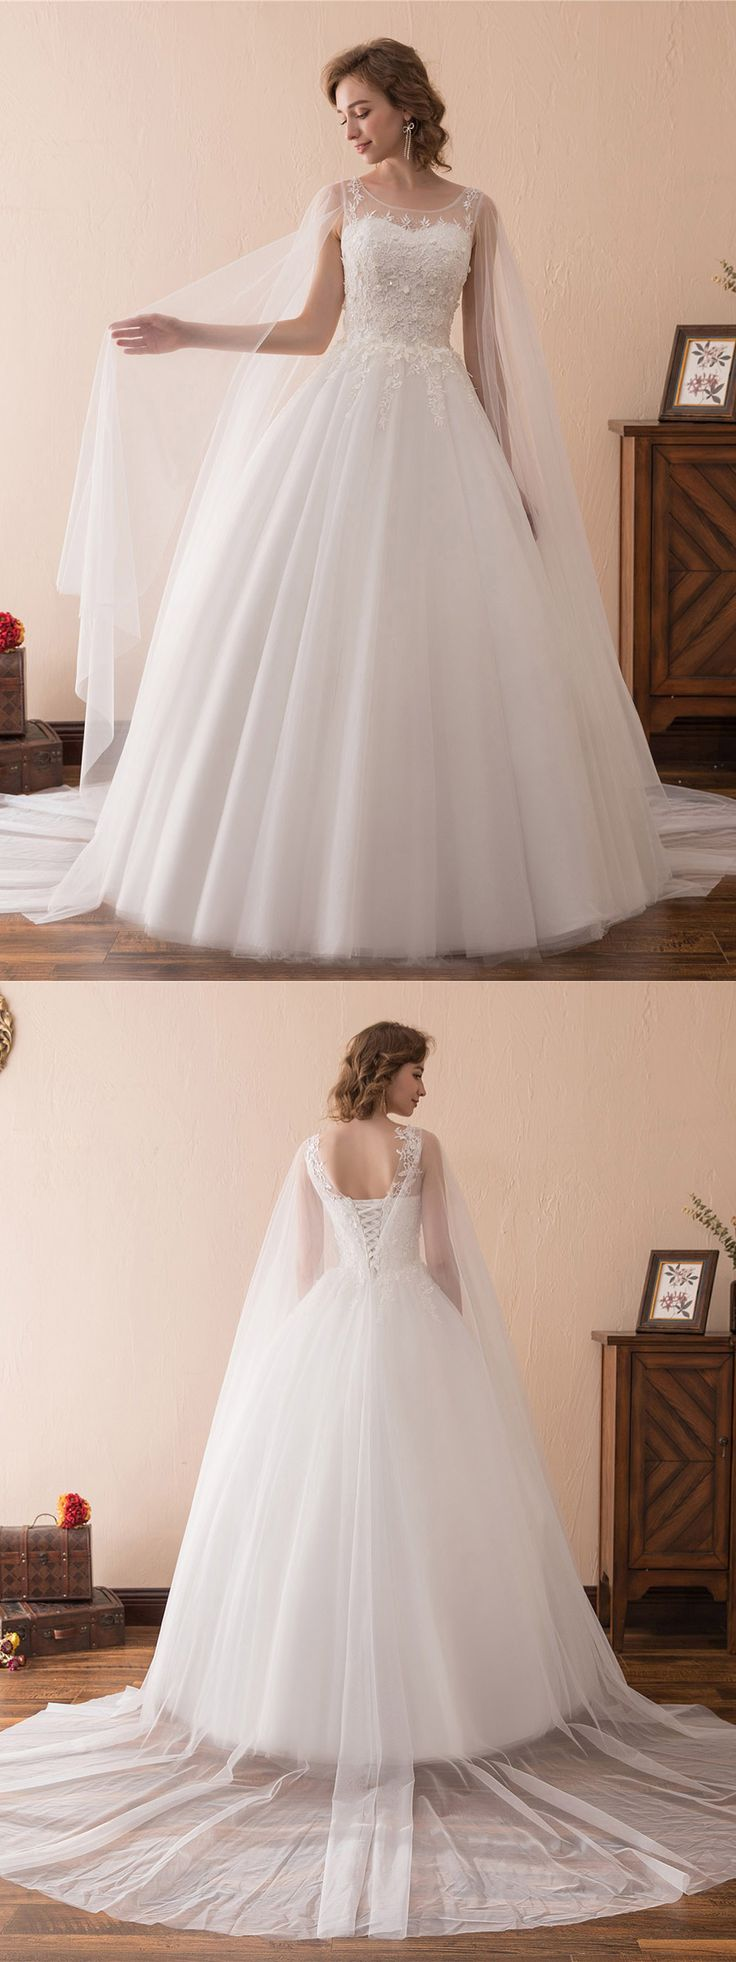 Best 25 ballroom wedding dresses ideas on pinterest tulle simple tulle lace ballroom wedding gowns with cape train ch6682 gemgrace junglespirit Image collections